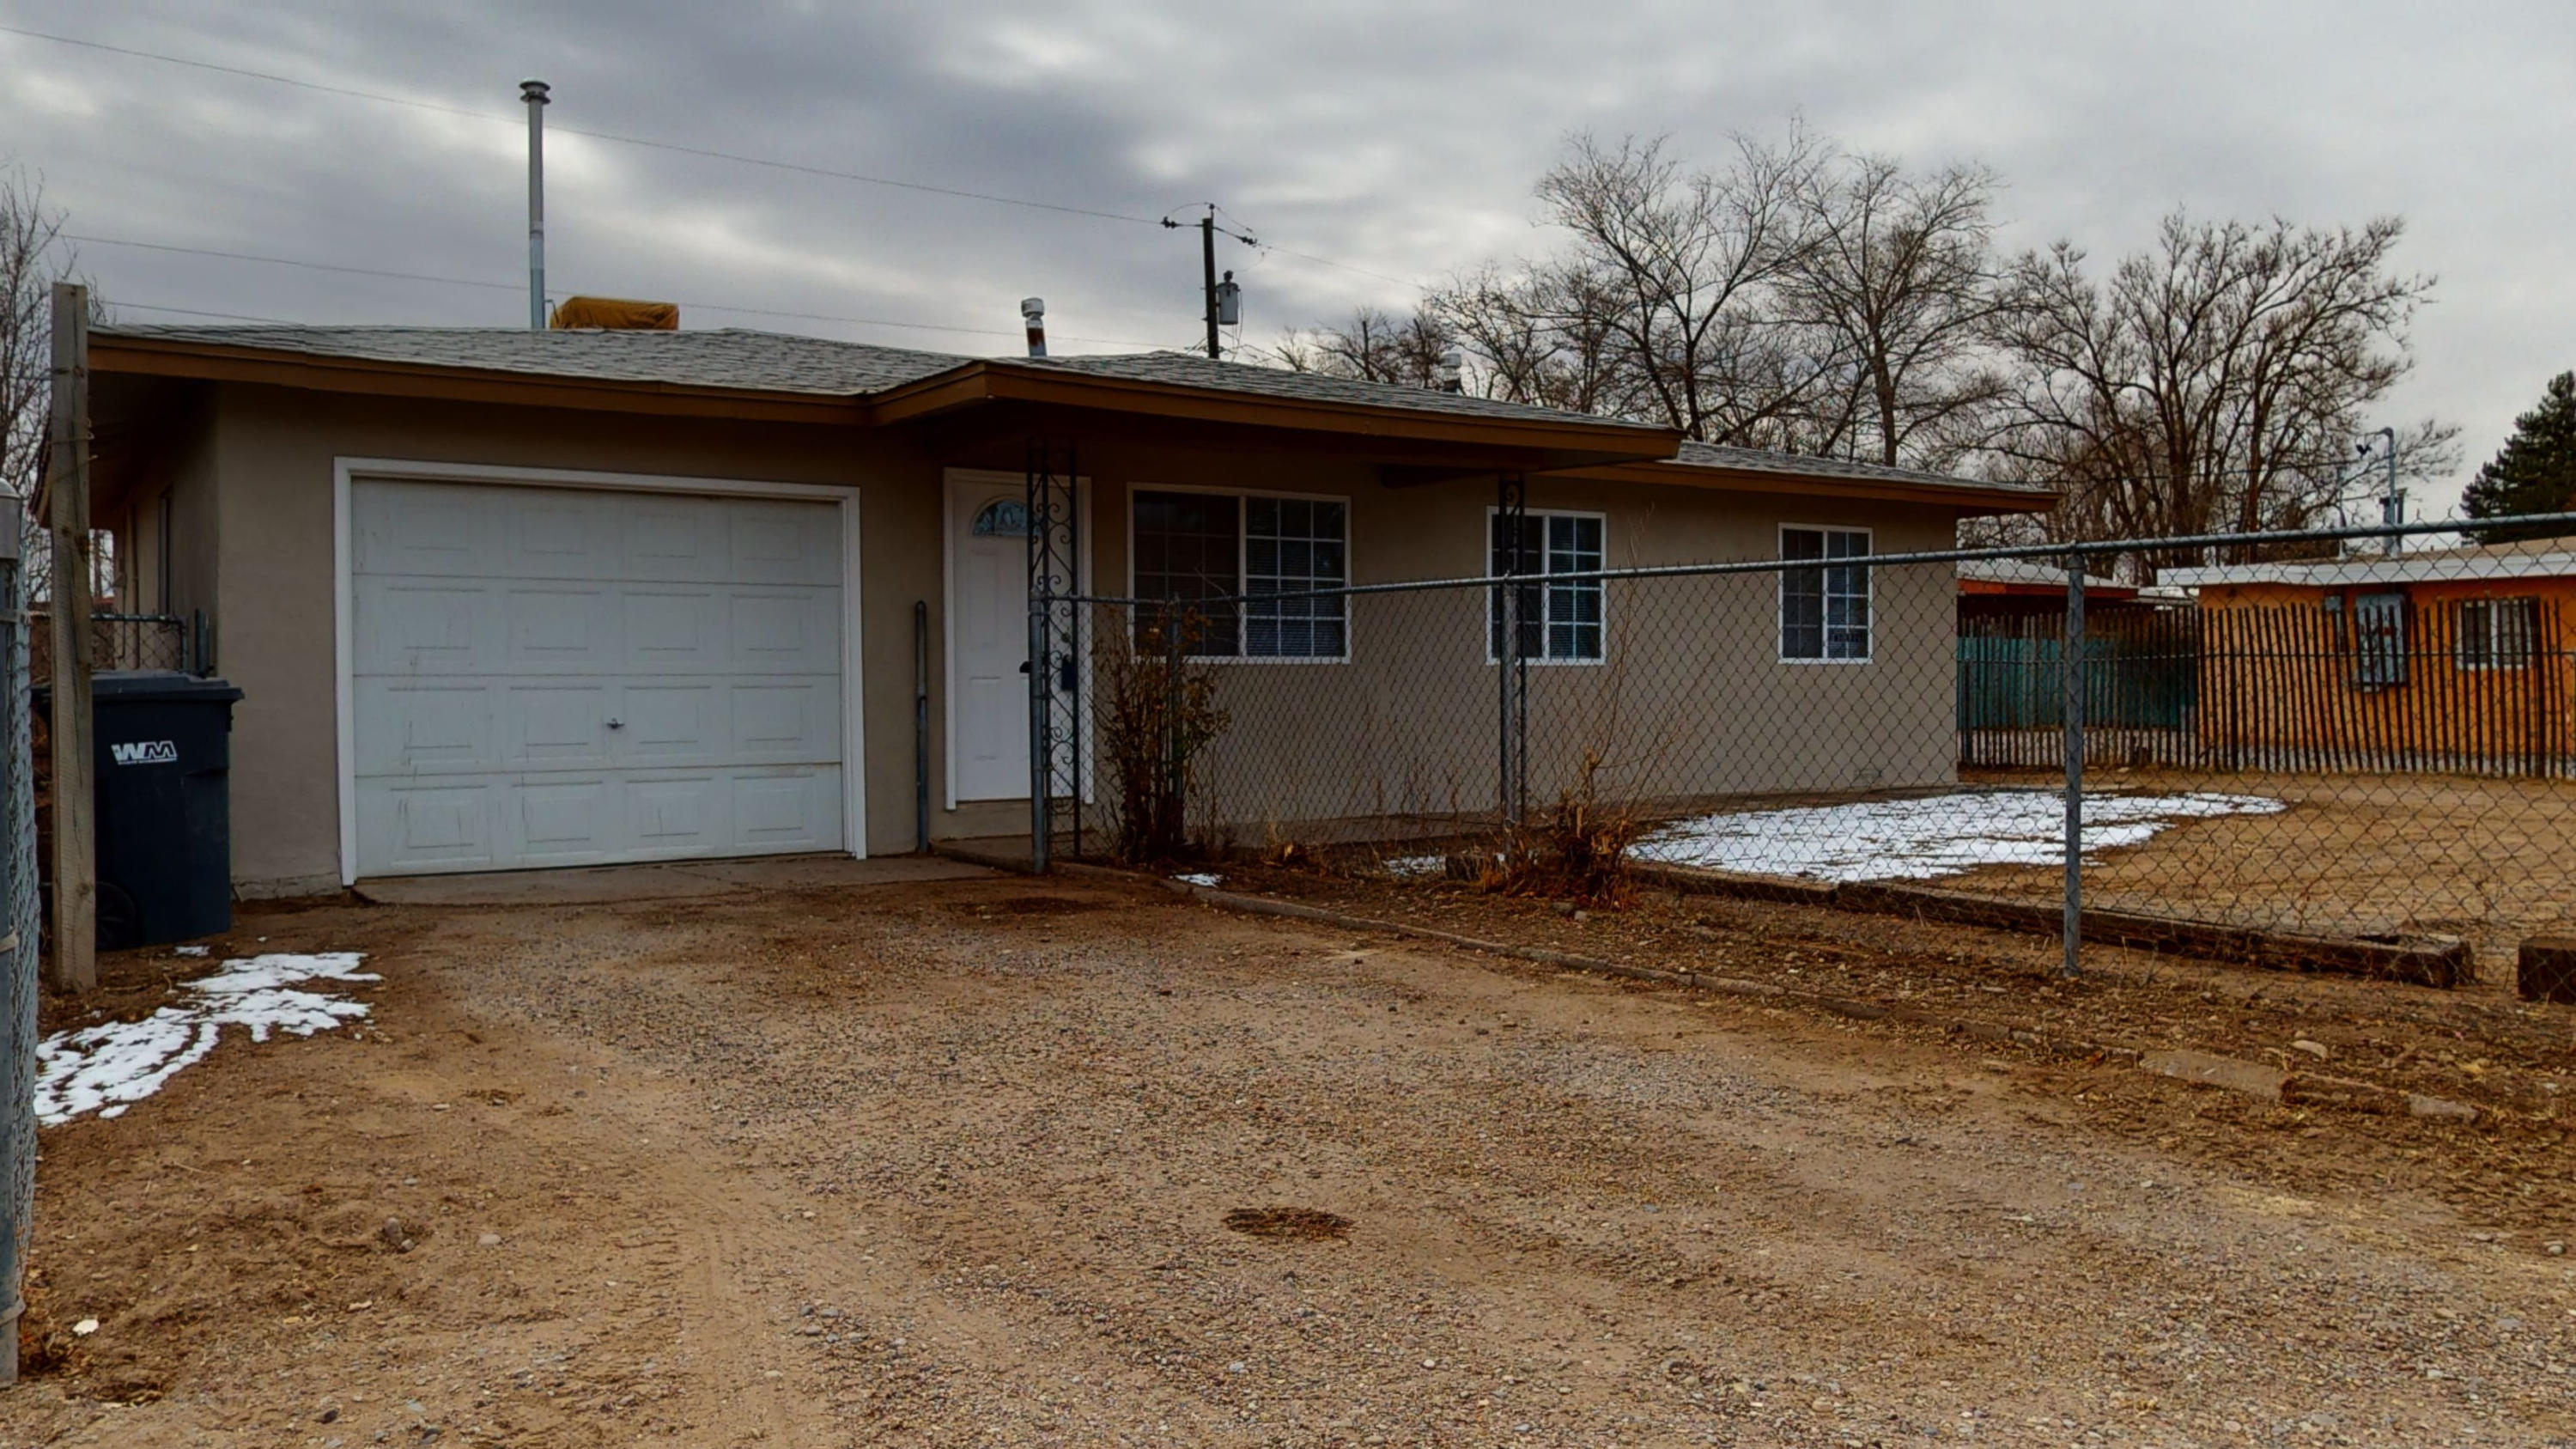 Really nice updating to this cute North Valley home on a quiet cul de sac. BACKYARD ACCESS. Big covered porch in the back to enjoy Summer evenings!  NEW: Granite countertops, carpet and water heater. Very close to Paseo access.  You're going to love this one!  Vacant and safe to show!